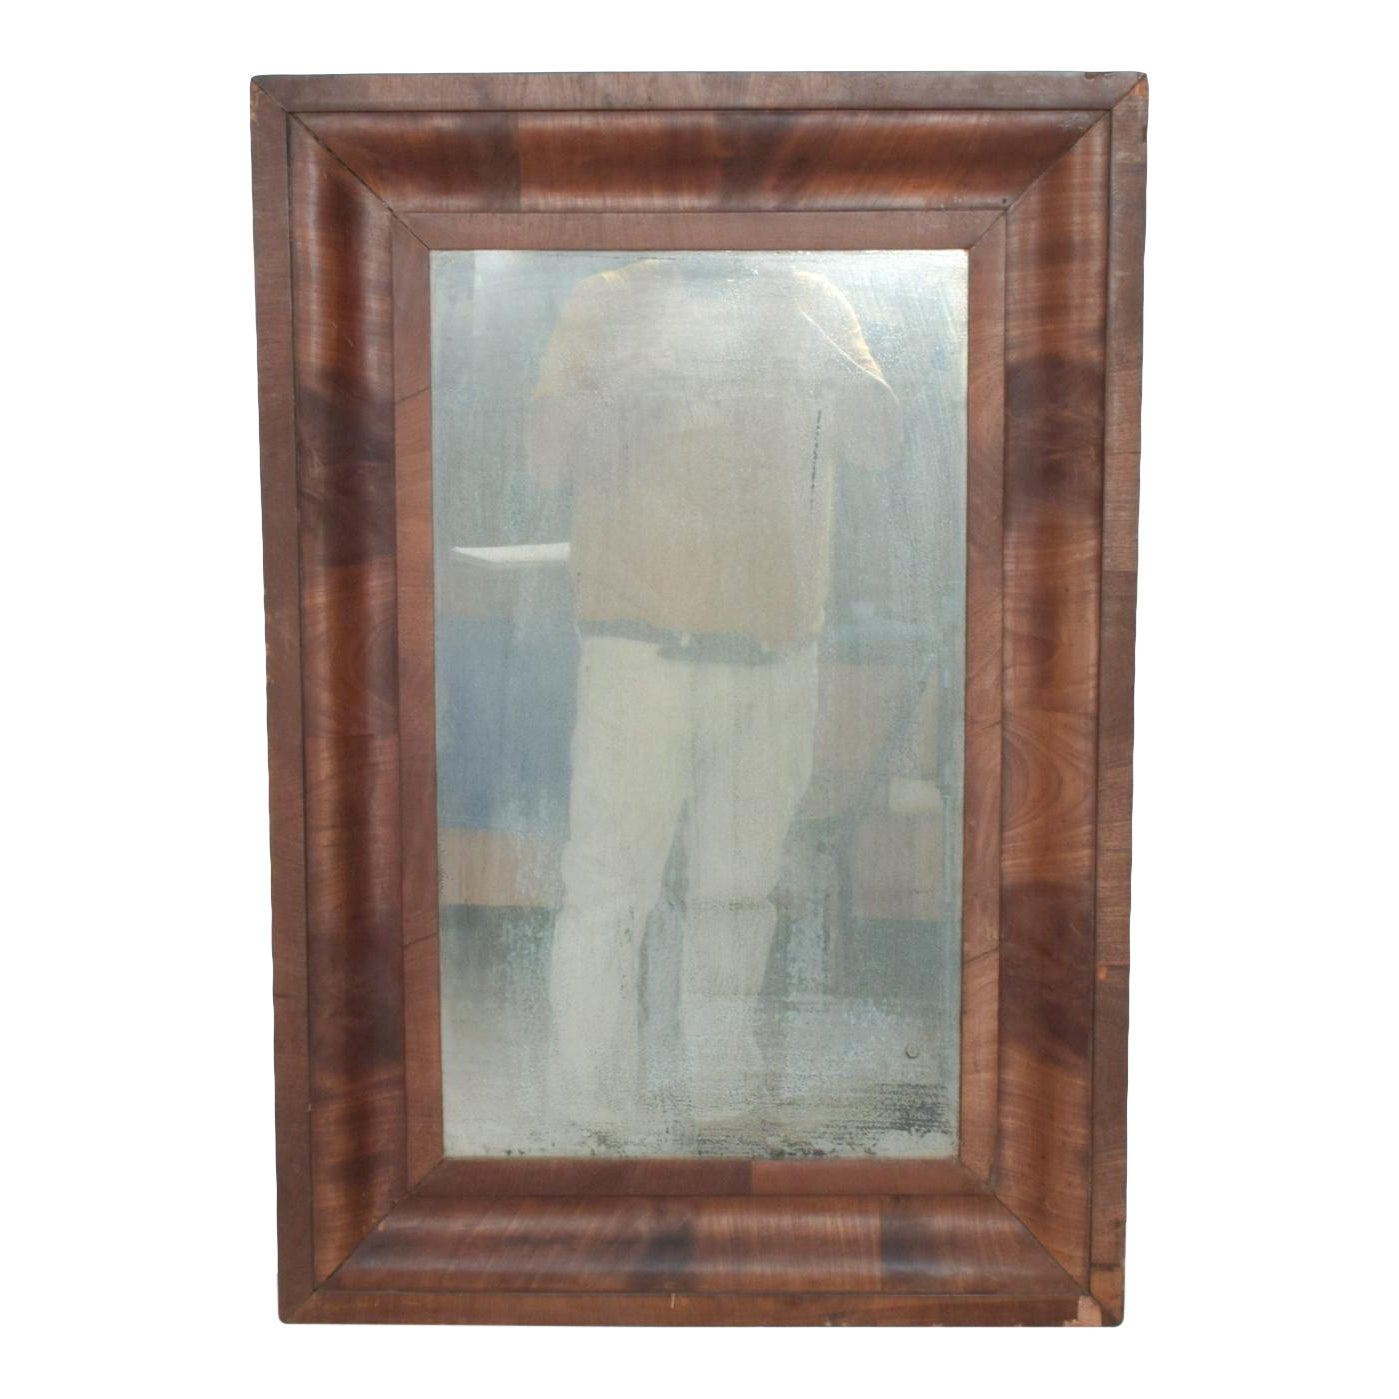 Antique Art Deco Wall Mirror Framed In Rosewood Vintage Patina Chairish